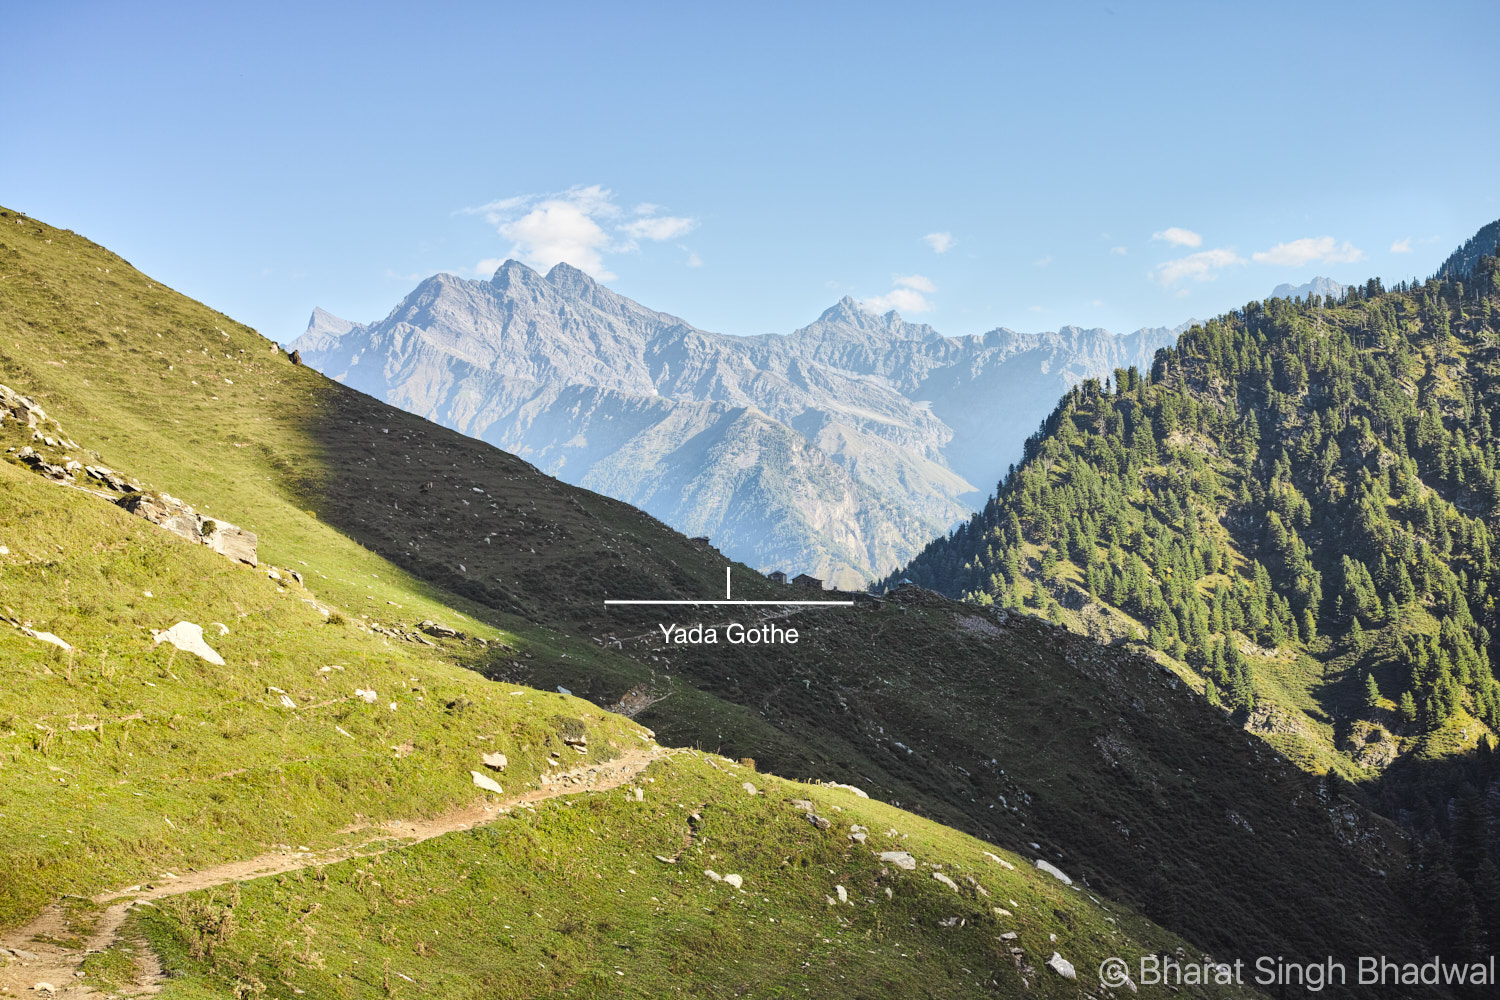 Approaching Yada Gothe. Yada is an excellent place for an overnight stay and it has the best view of Mani Mahesh / Chamba Kailash and Kuja Peak.